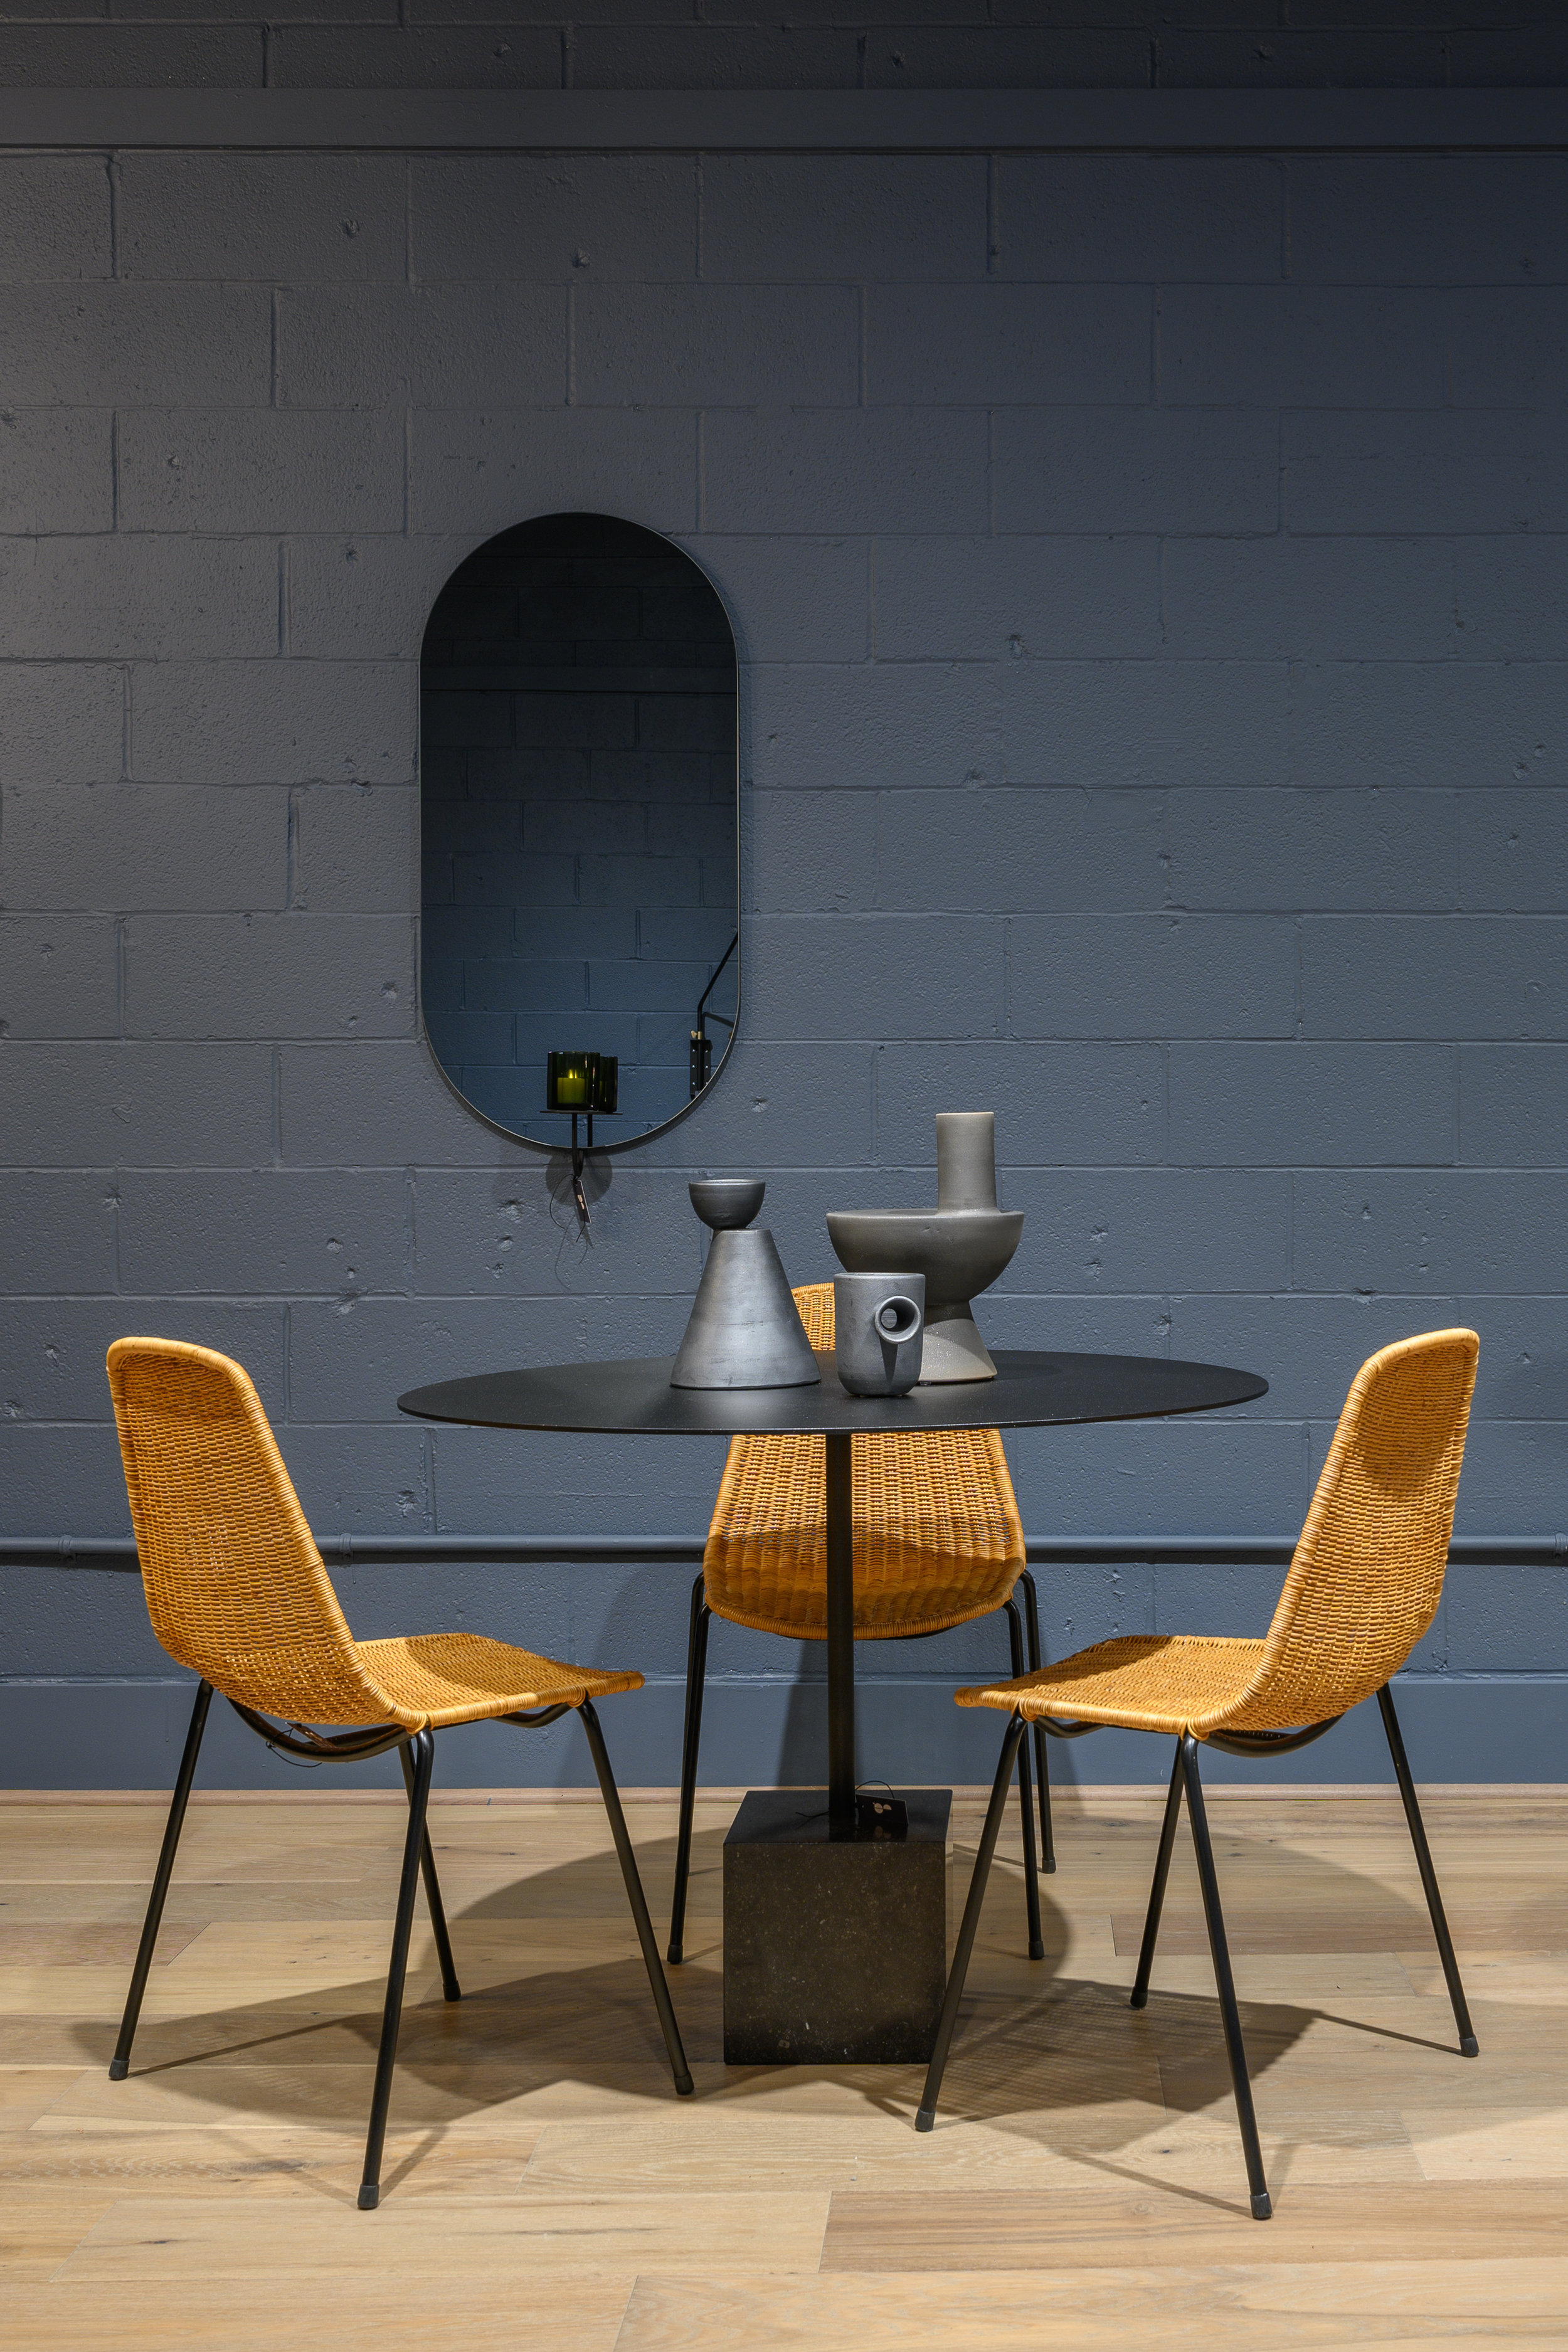 Basket Chairs with Knock Out Dining Table